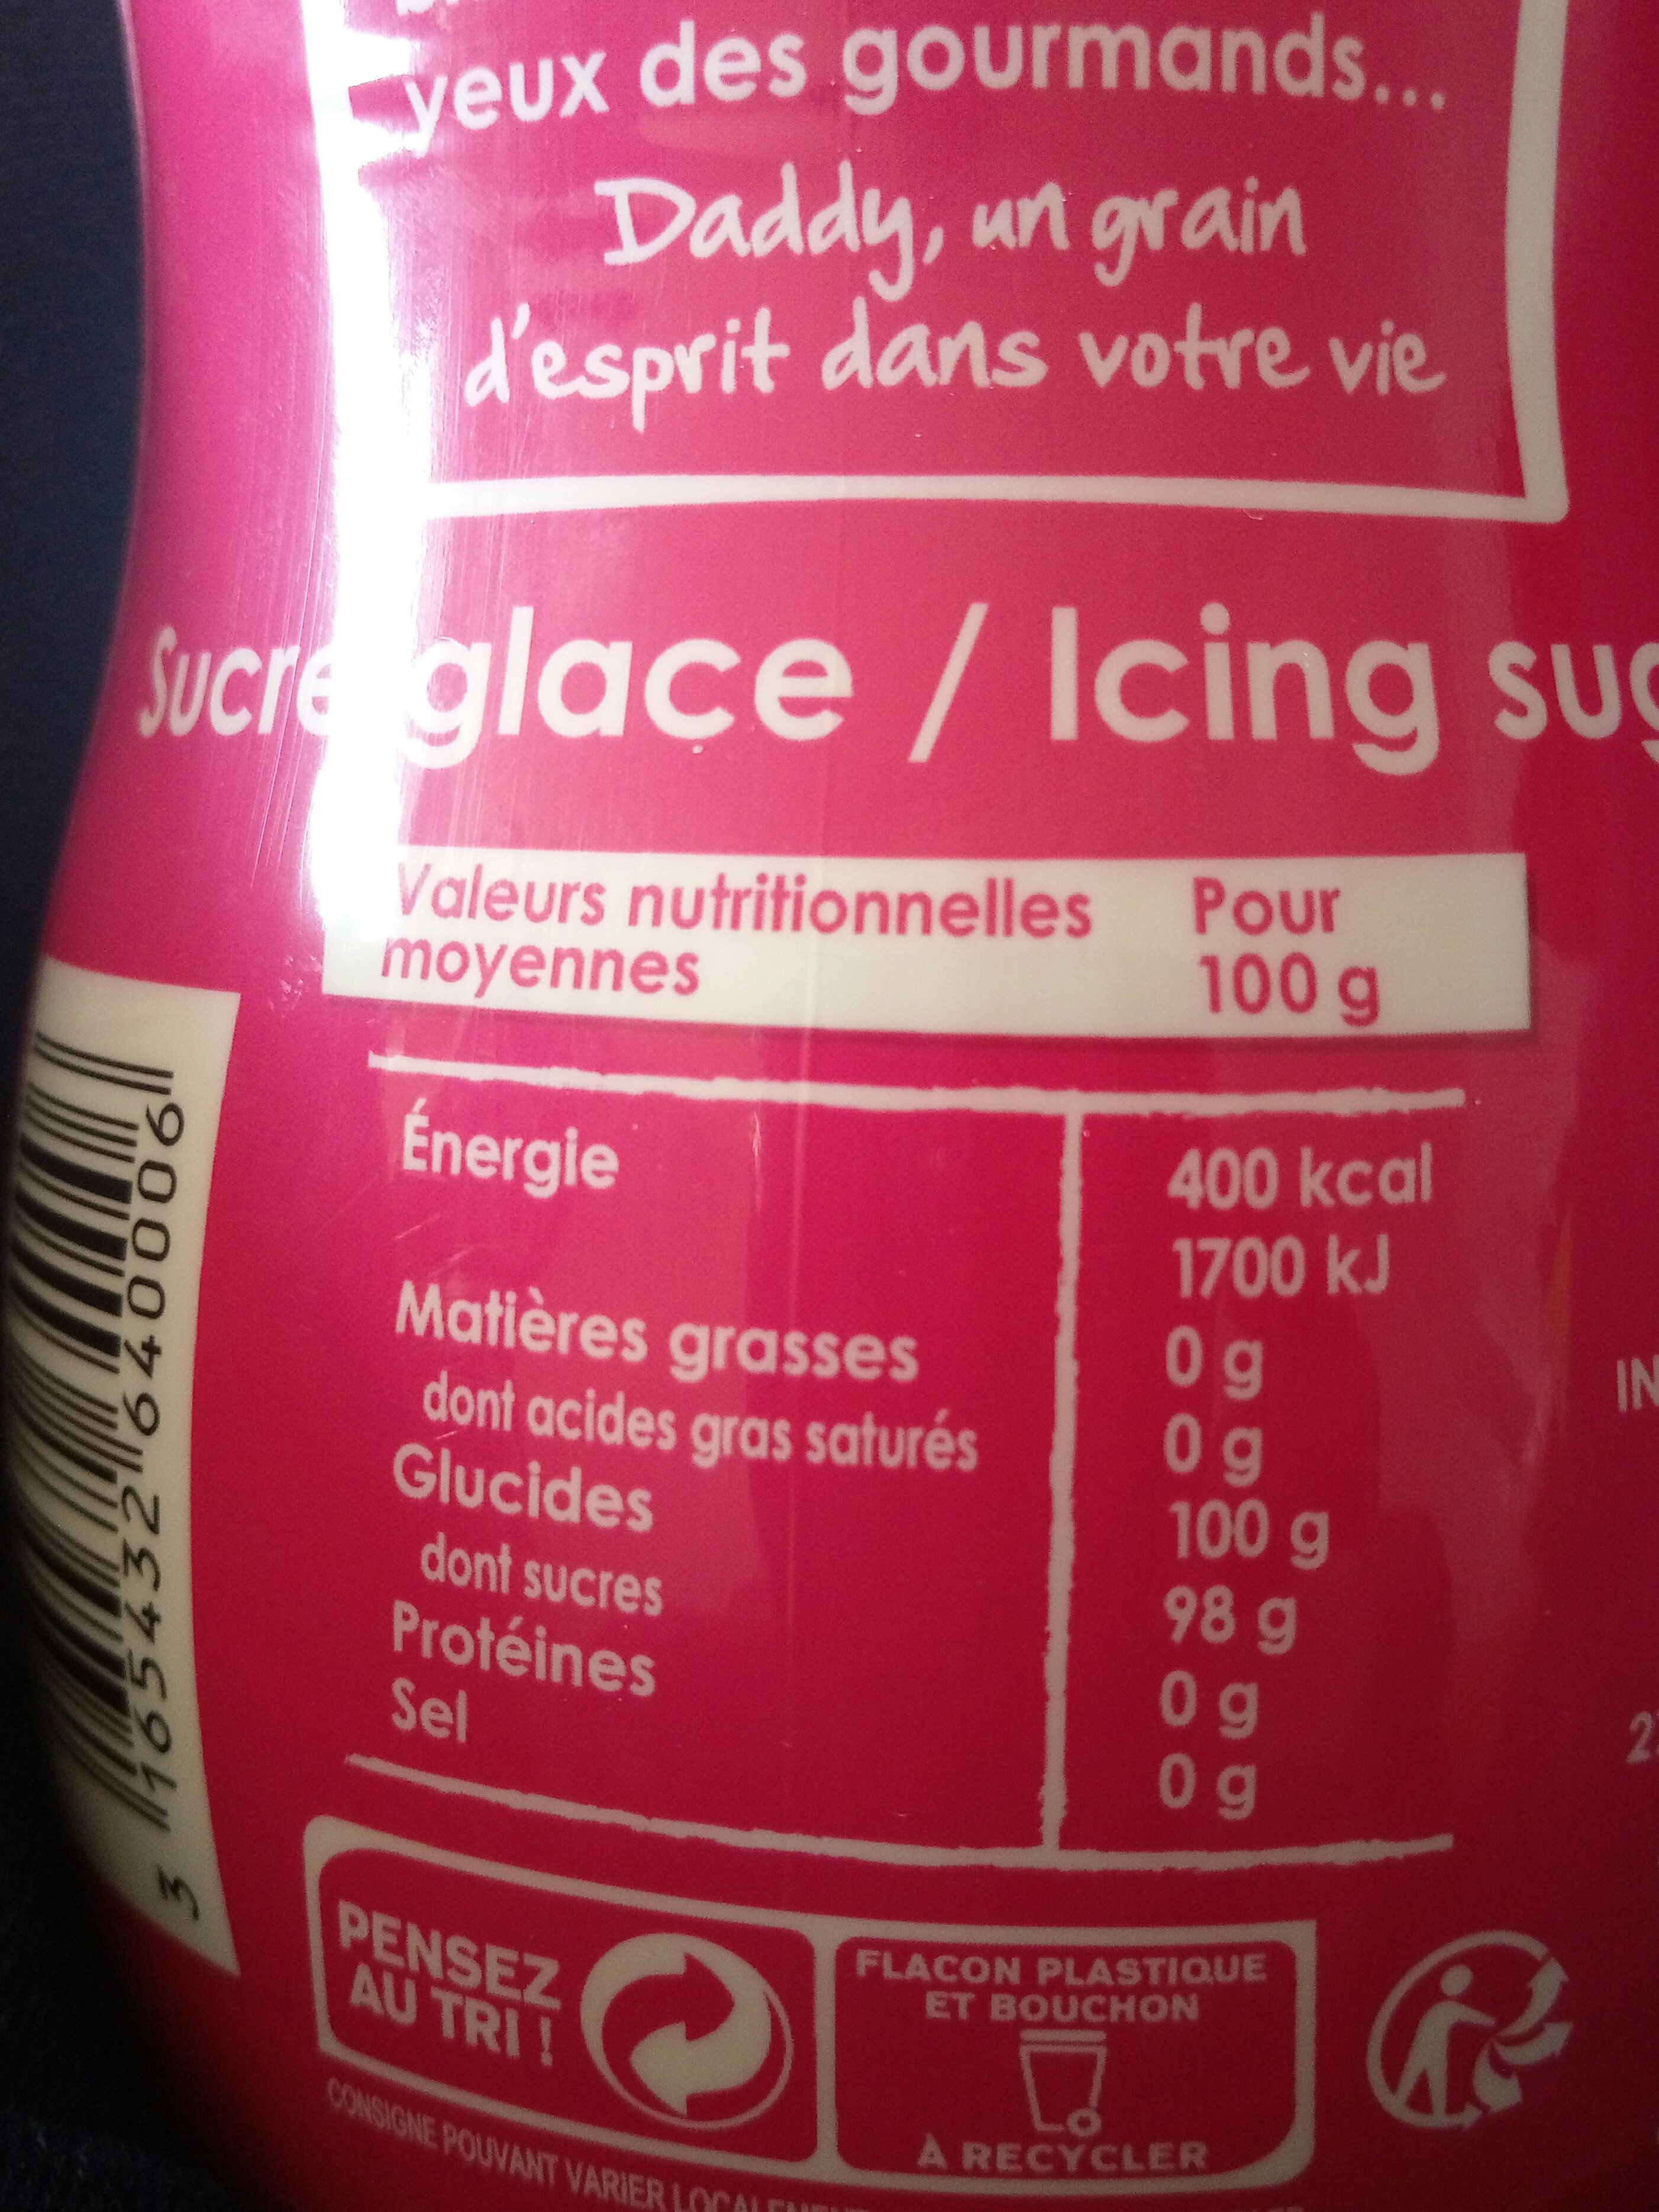 Sucre glace - Nutrition facts